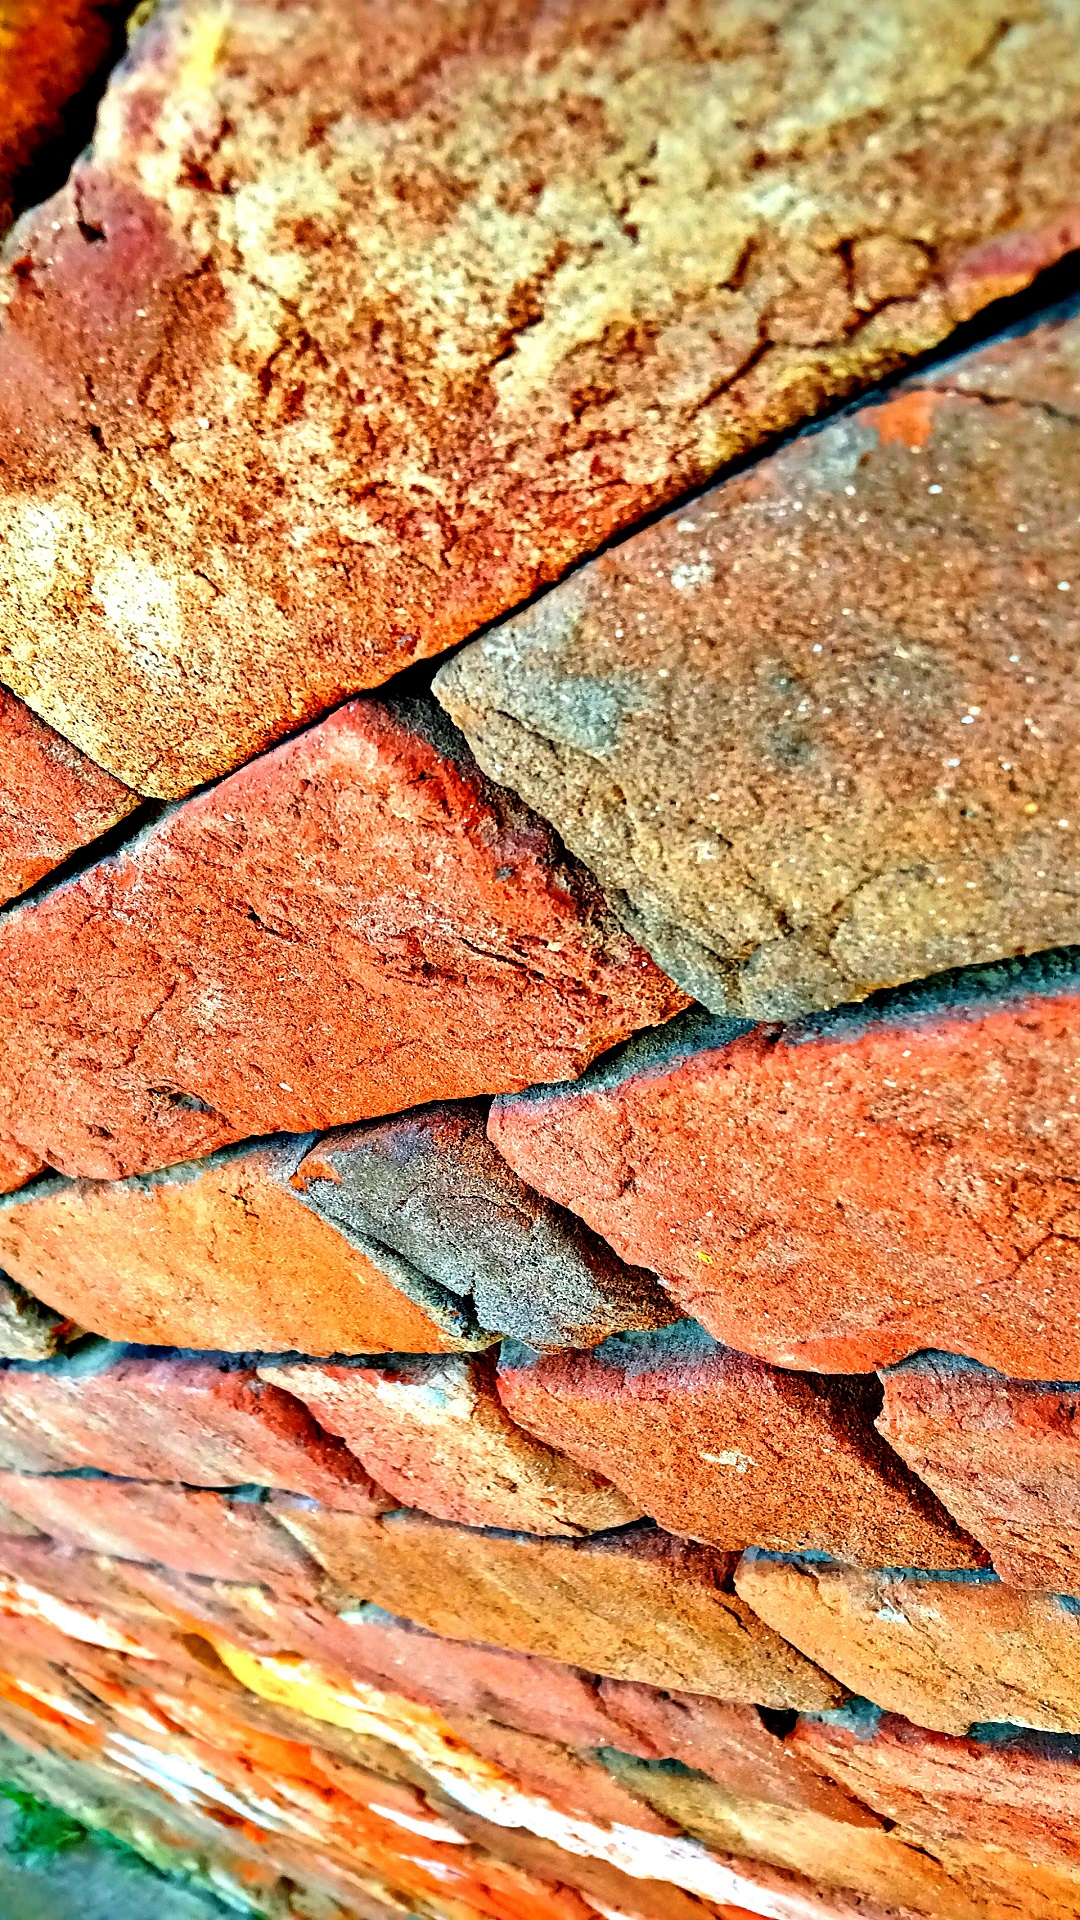 Bricklaying Wallpaper For Androids